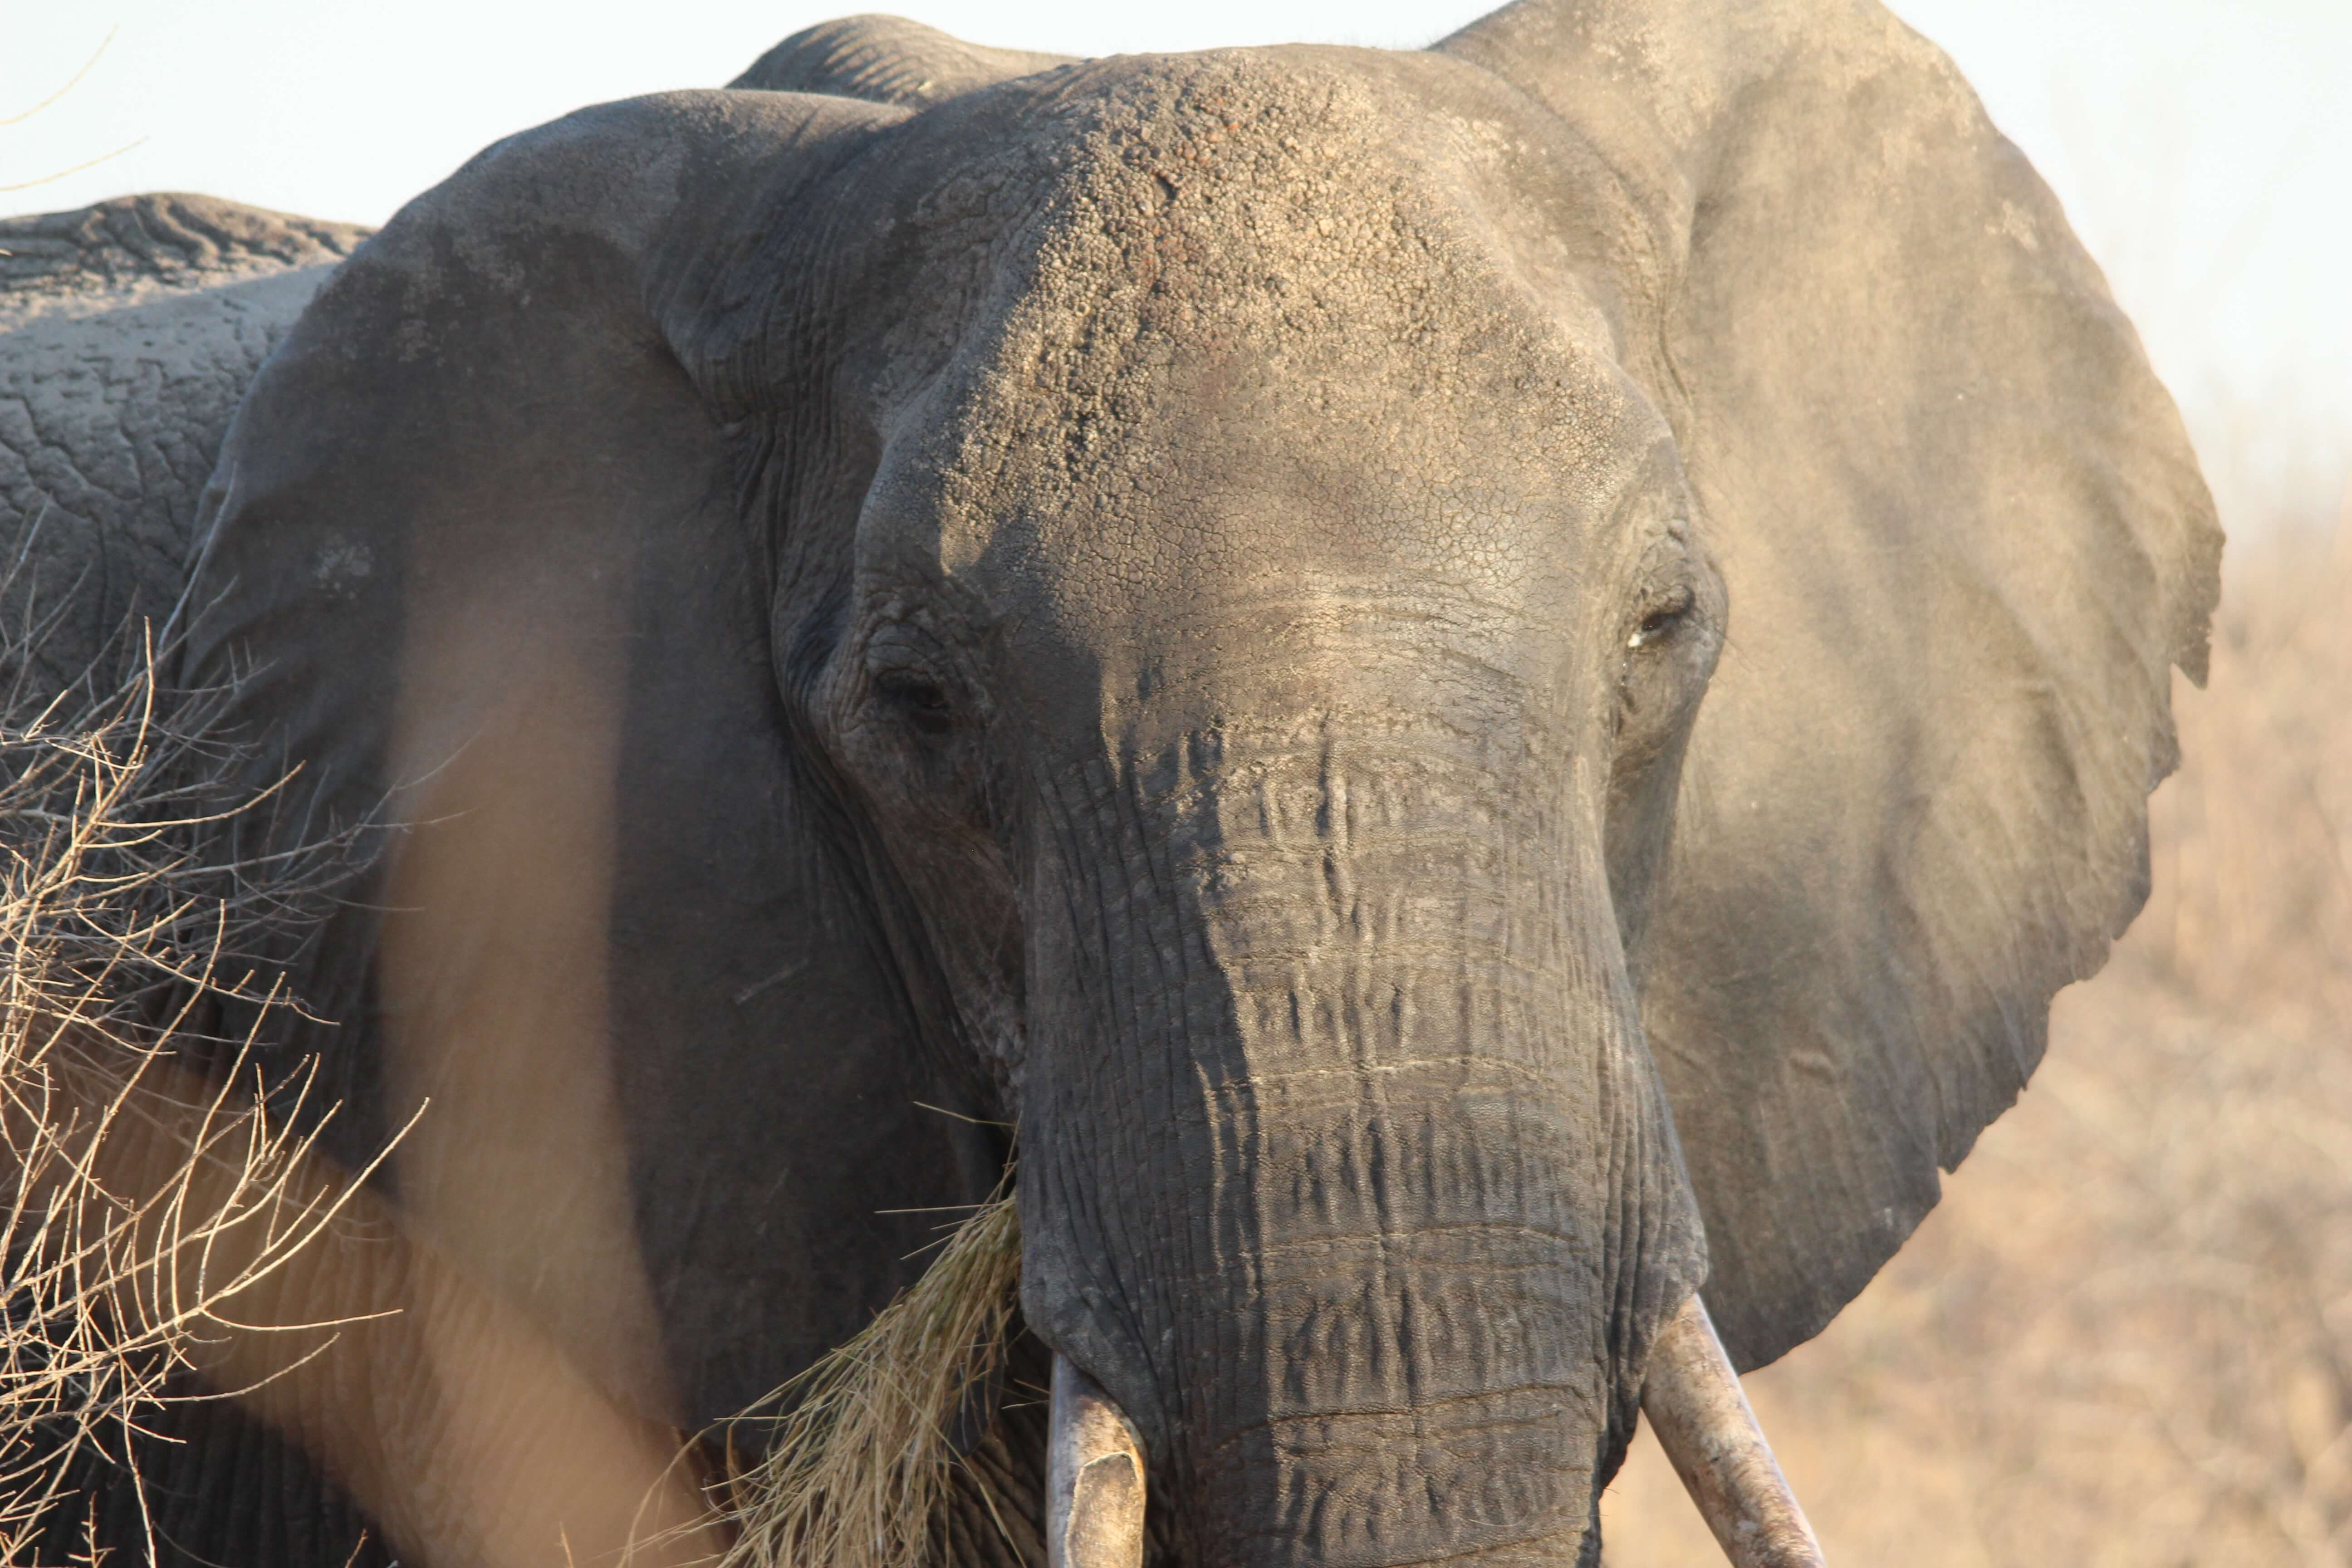 Oog in oog met een olifant, Zimbabwe | Mambulu! Safaris with a Difference